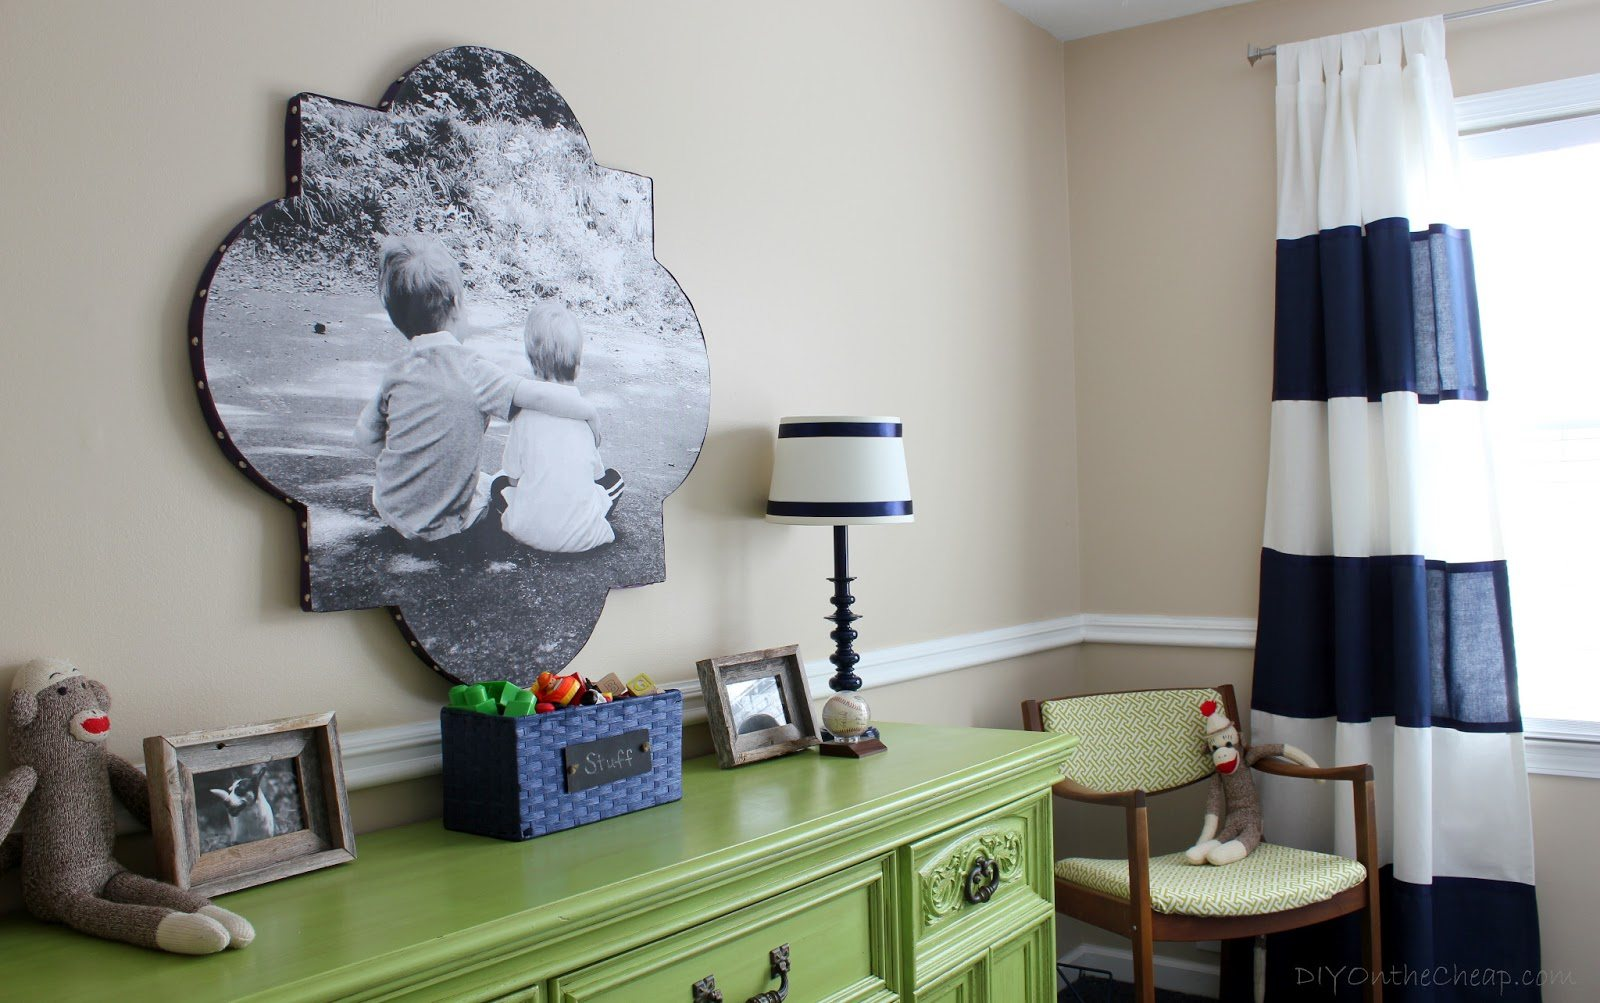 Green Traditional Bedroom Drawers, With Black And White Photo Of Two Children On The Wall